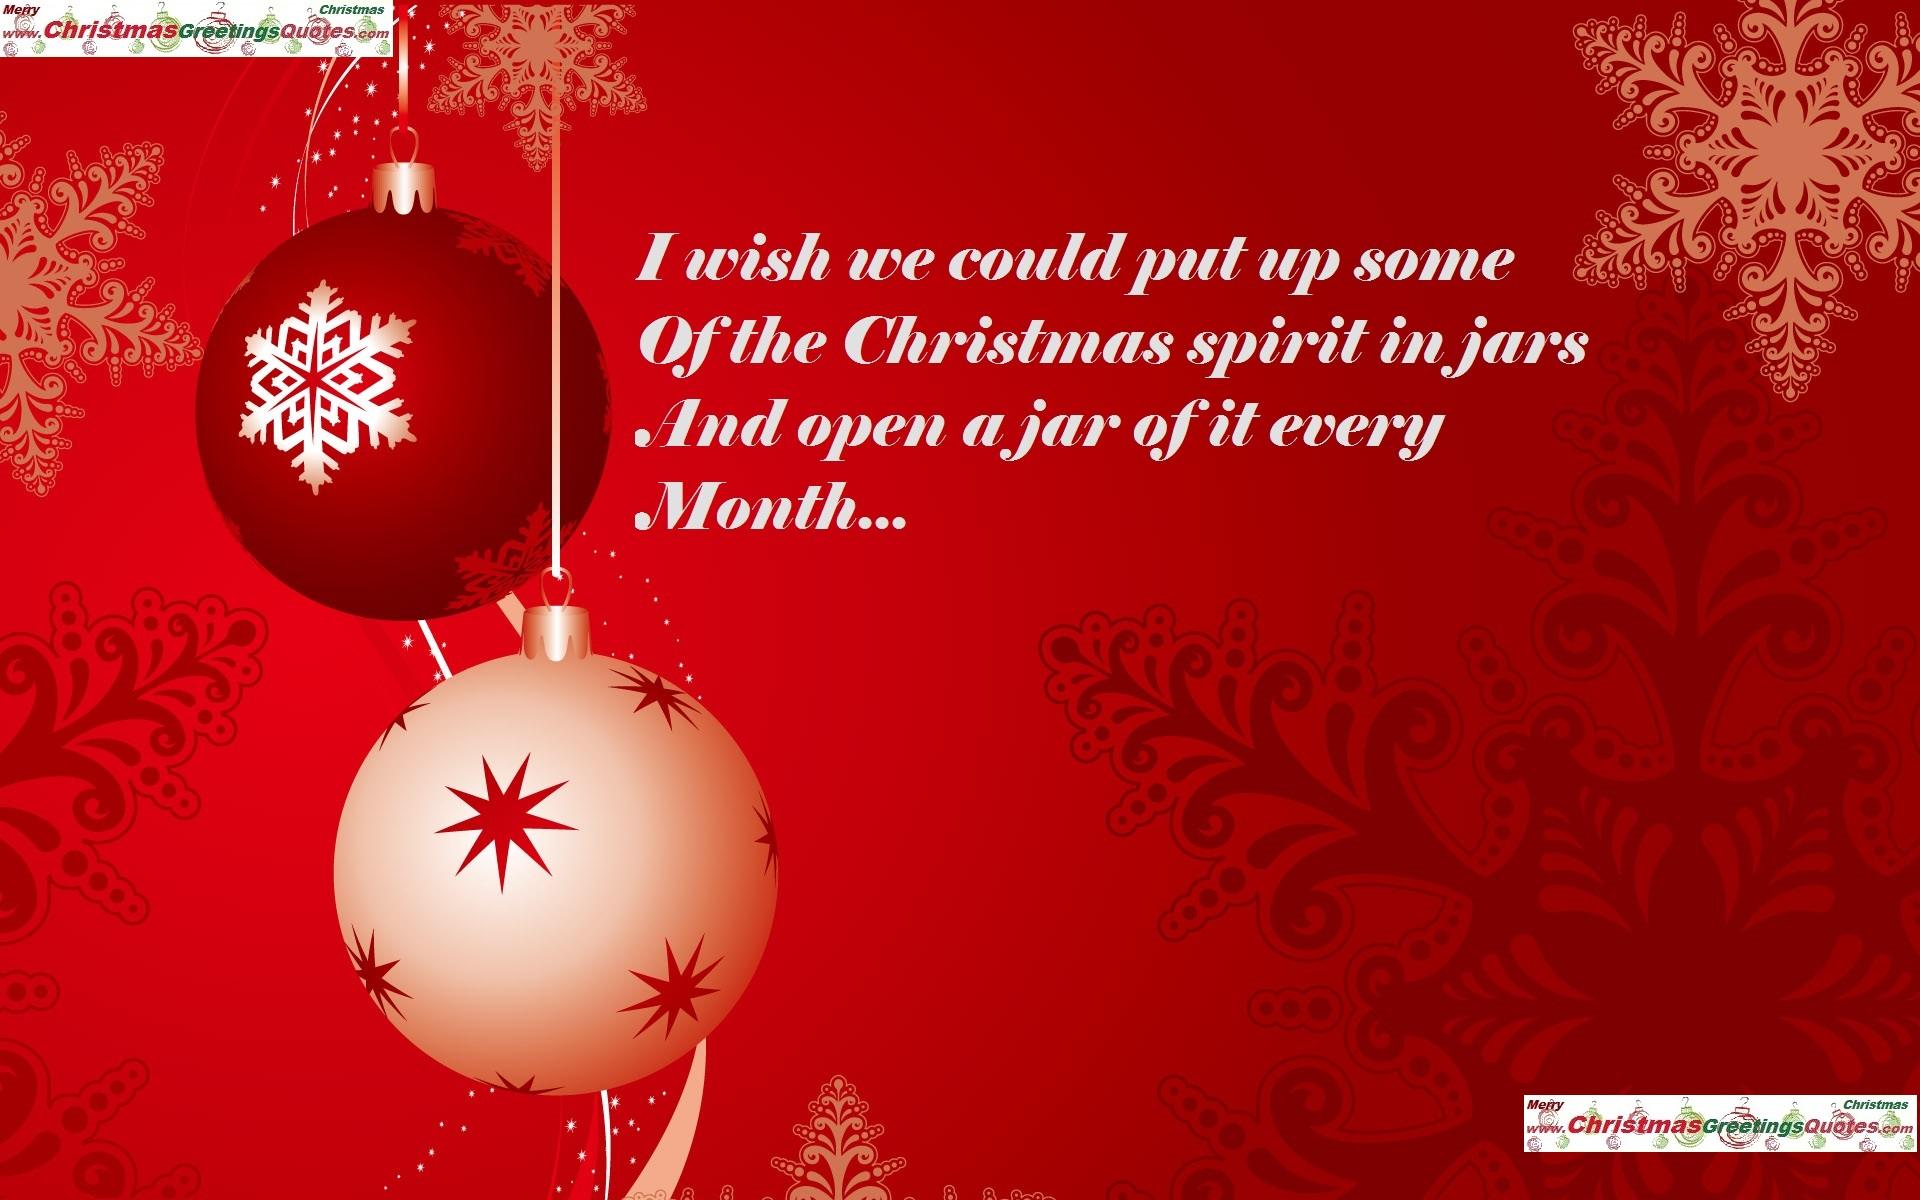 25 Best Christmas Quotes And Wishes: Merry Christmas Boss Quotes. QuotesGram